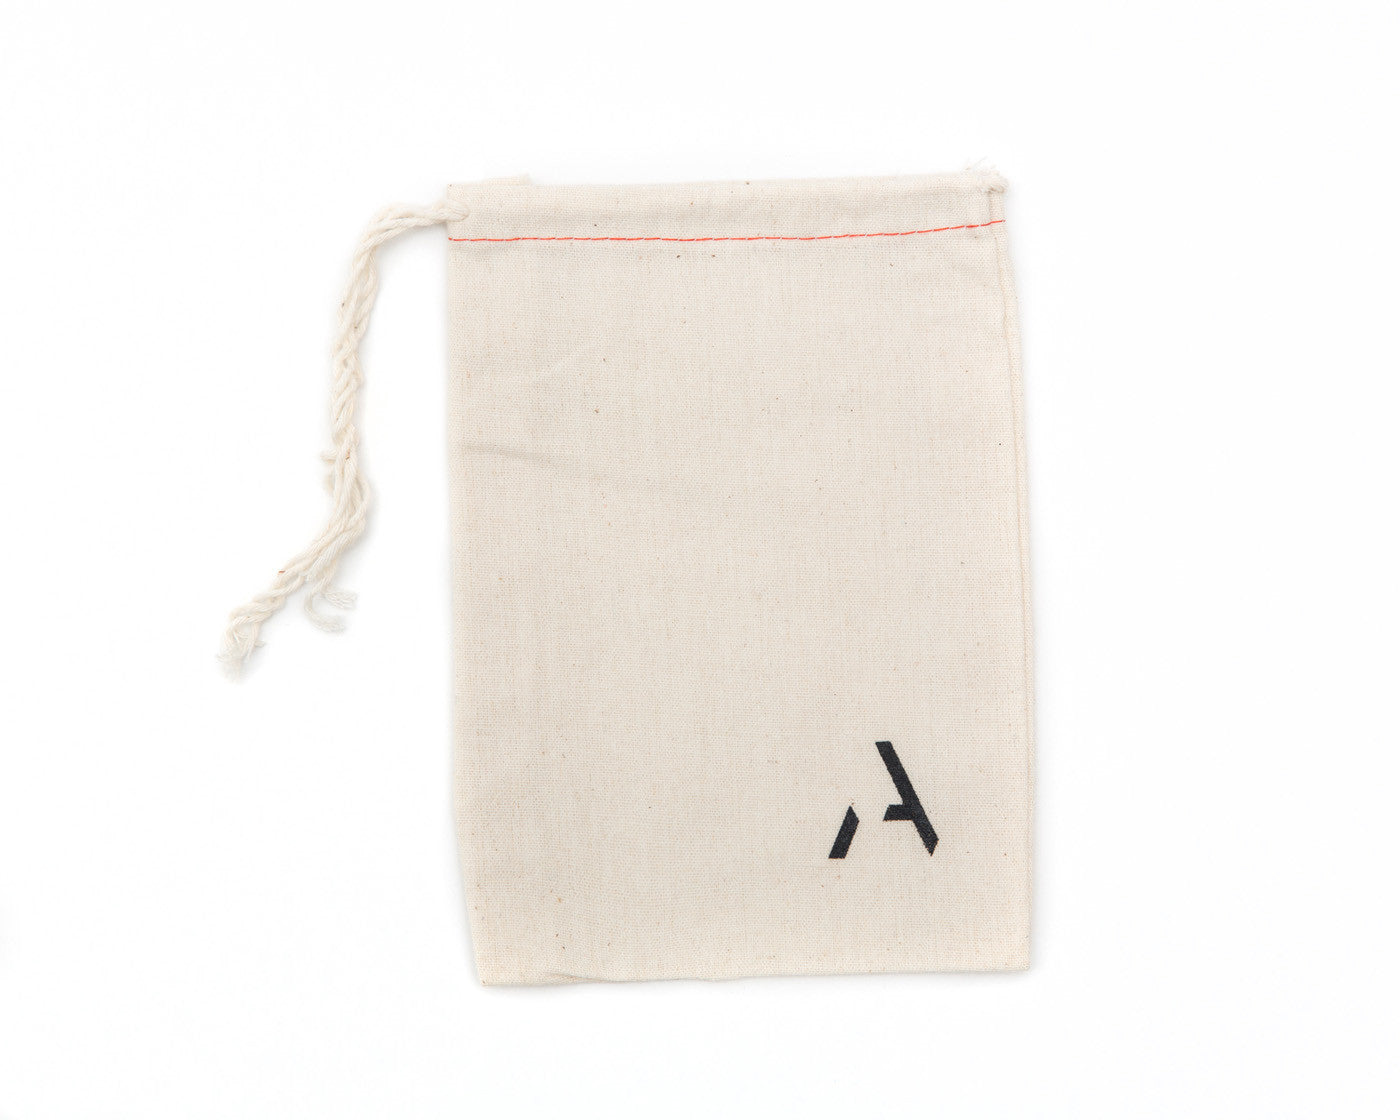 ONE AUSTER ACCESSORY POUCH<br>(to organize your vape life)